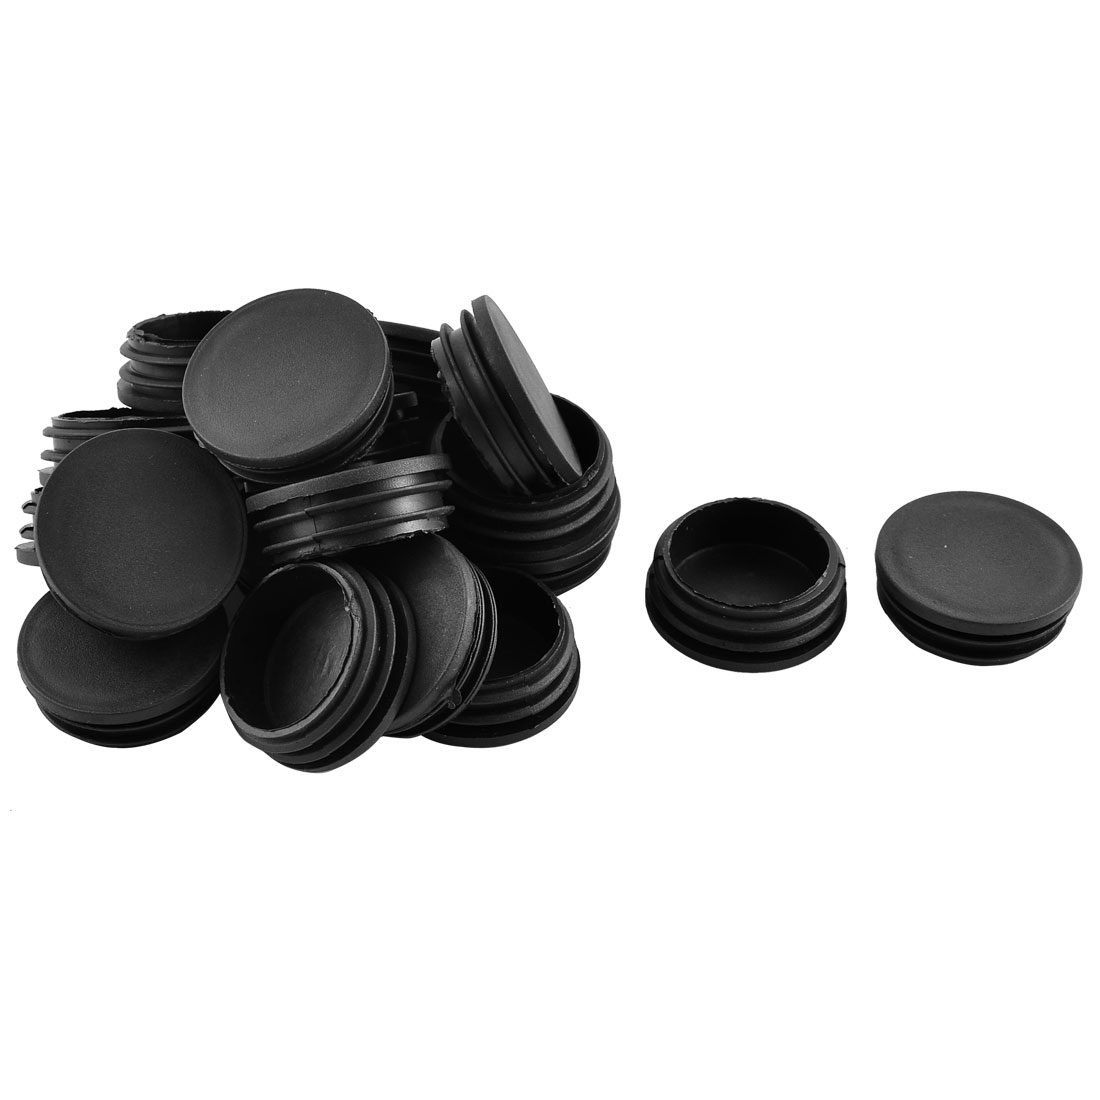 Household Office Plastic Round Shaped Furniture Table Chair Leg Feet Tube Insert Black 20 Pcs